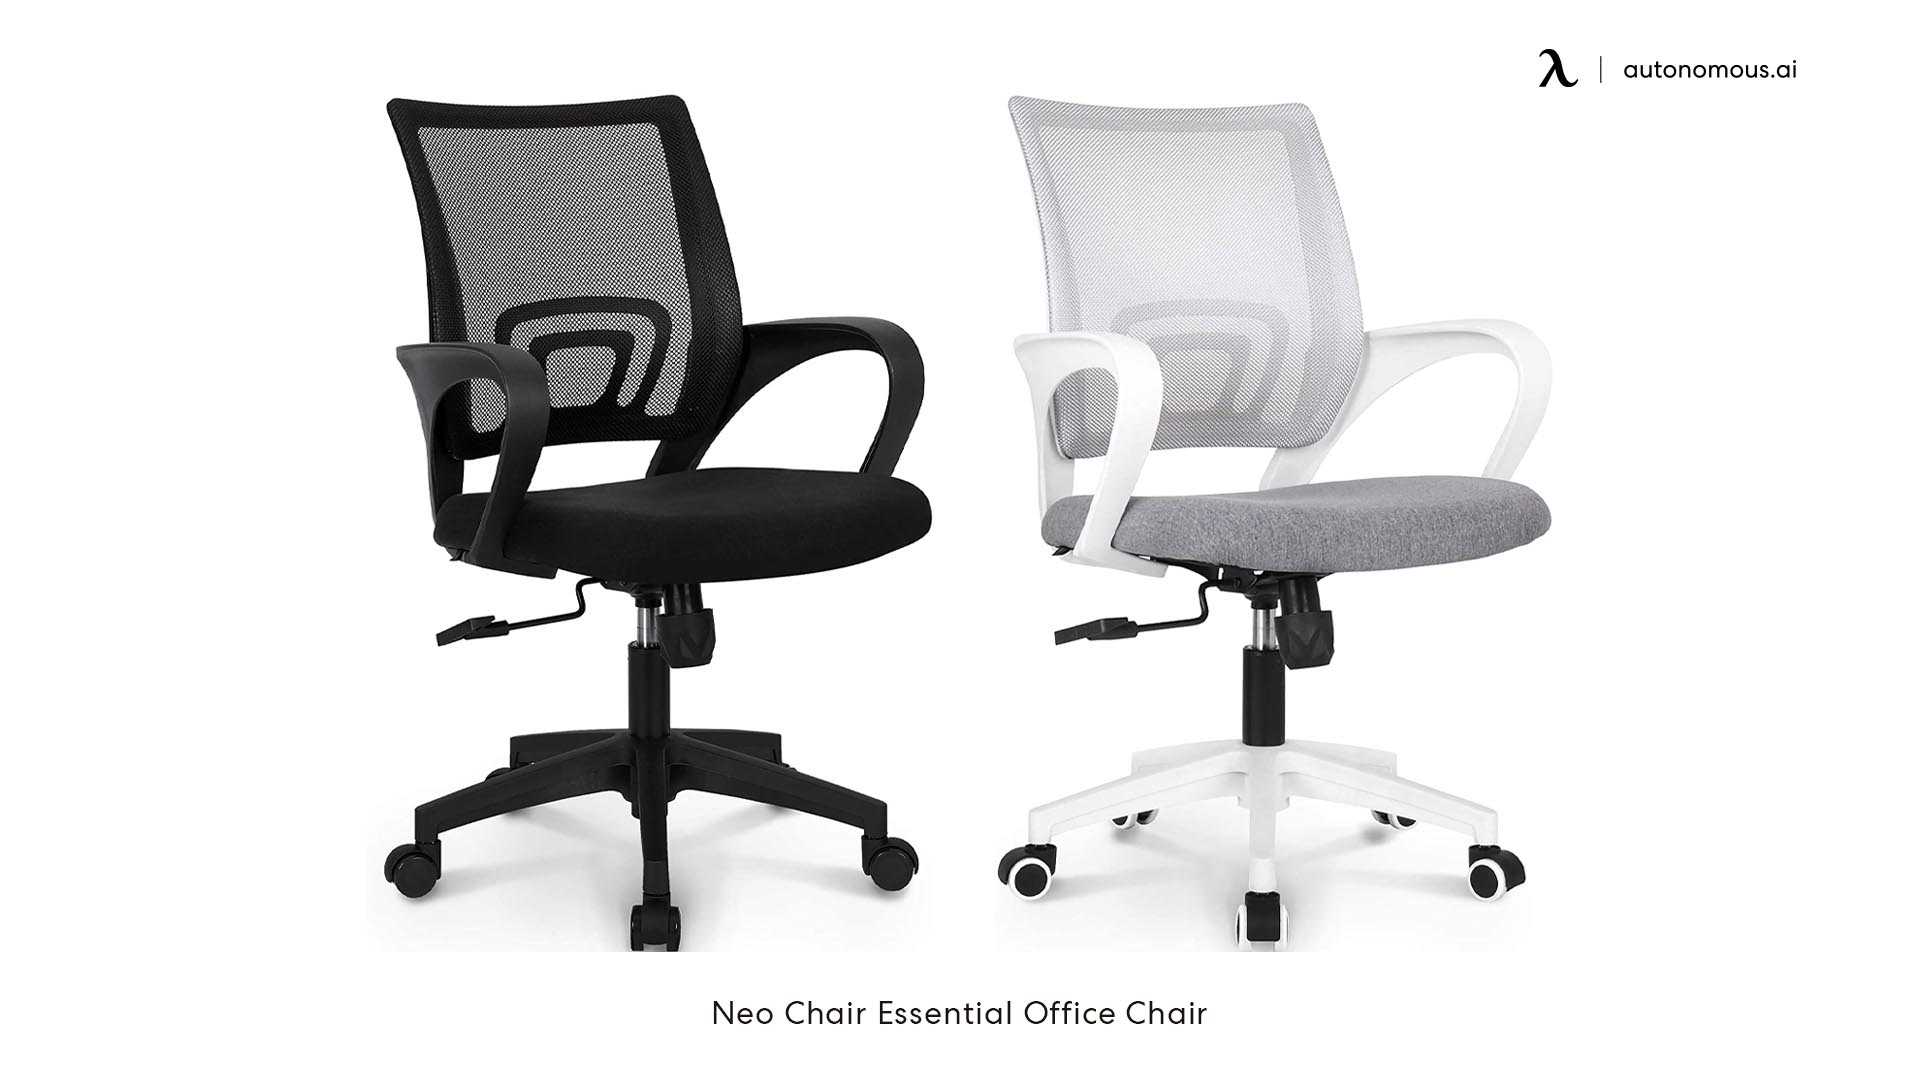 Neo Chair Essential Office Chair